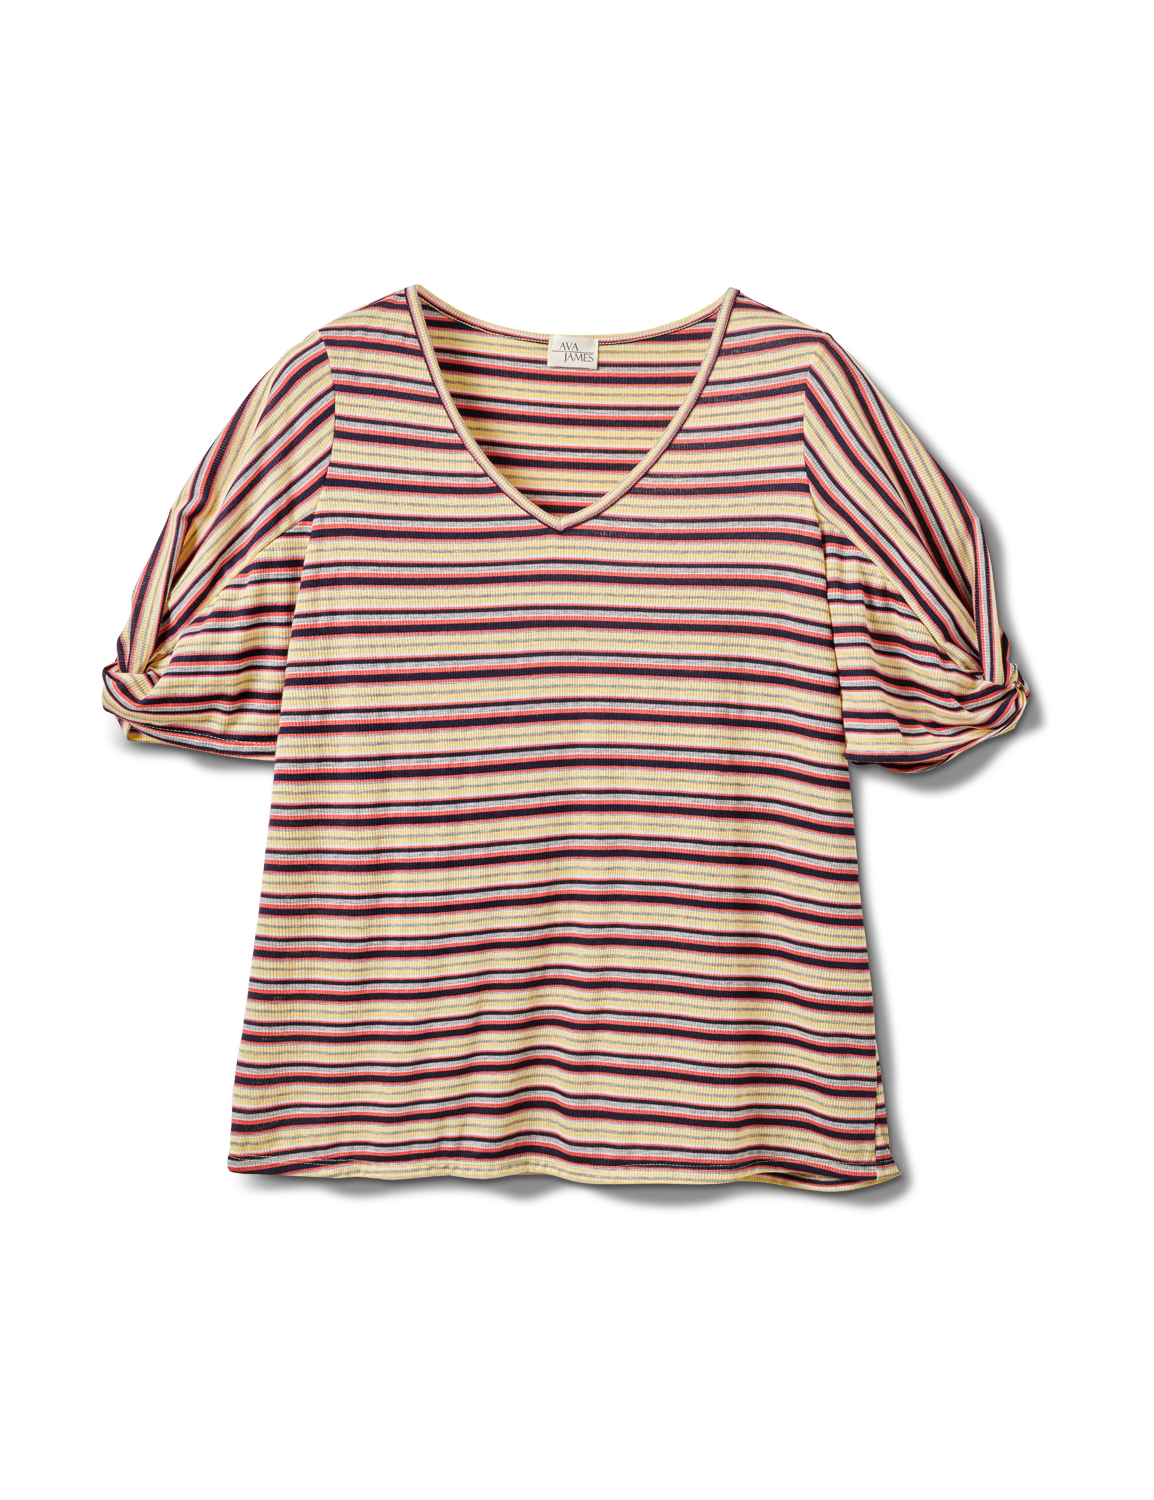 Rib Stripe Thermal Tee - Plus -Banana - Front